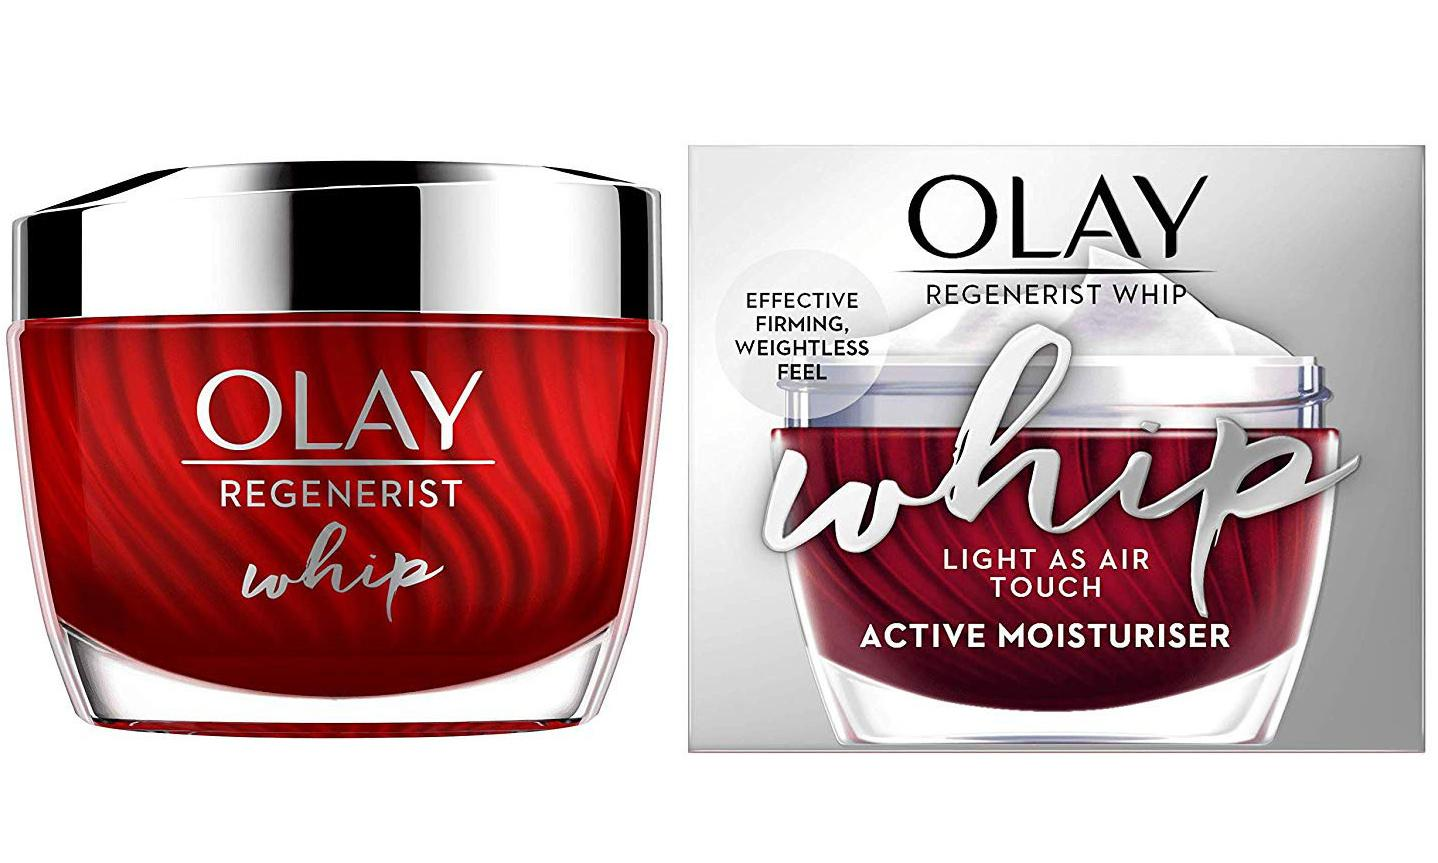 Olay becomes first major skincare brand to trial refillable packs